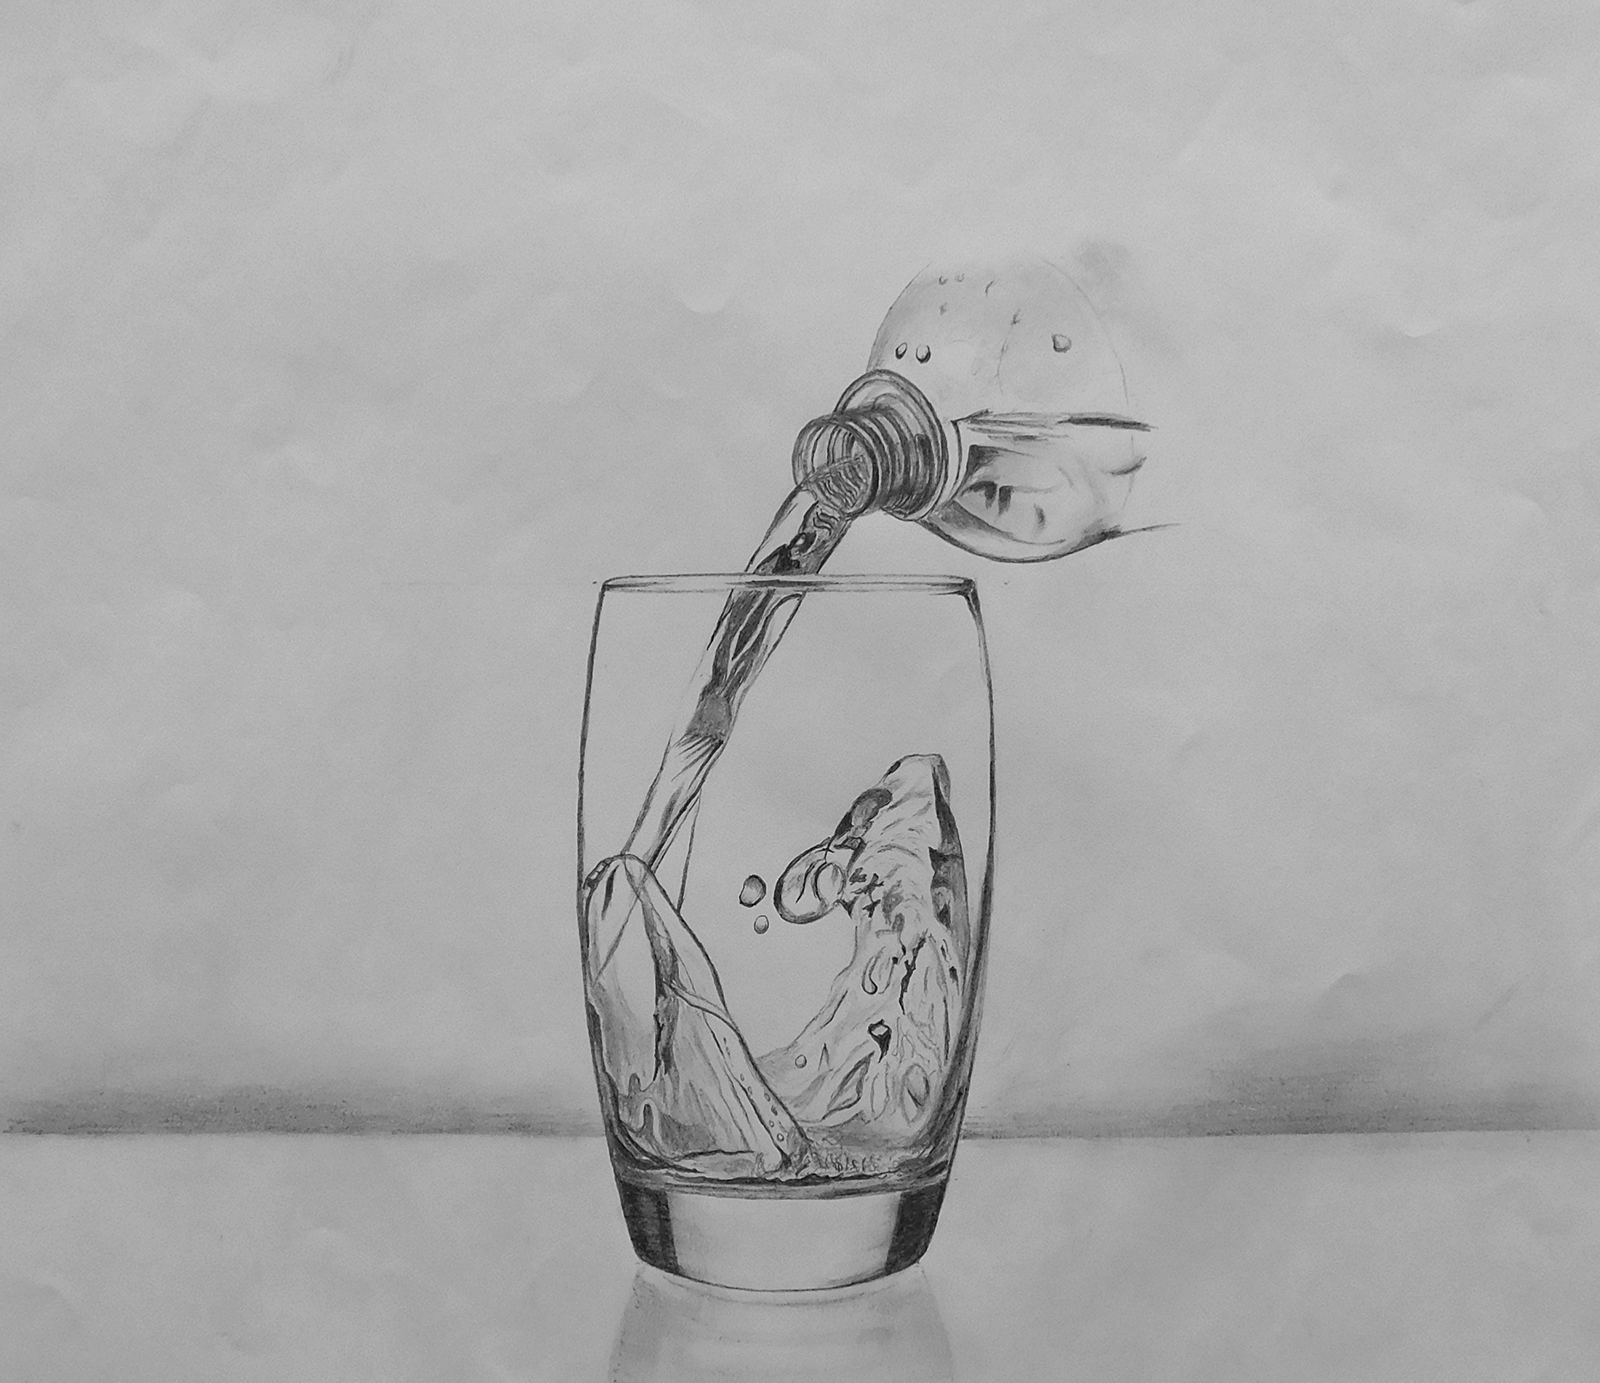 Pencil drawing of water being poured into glass